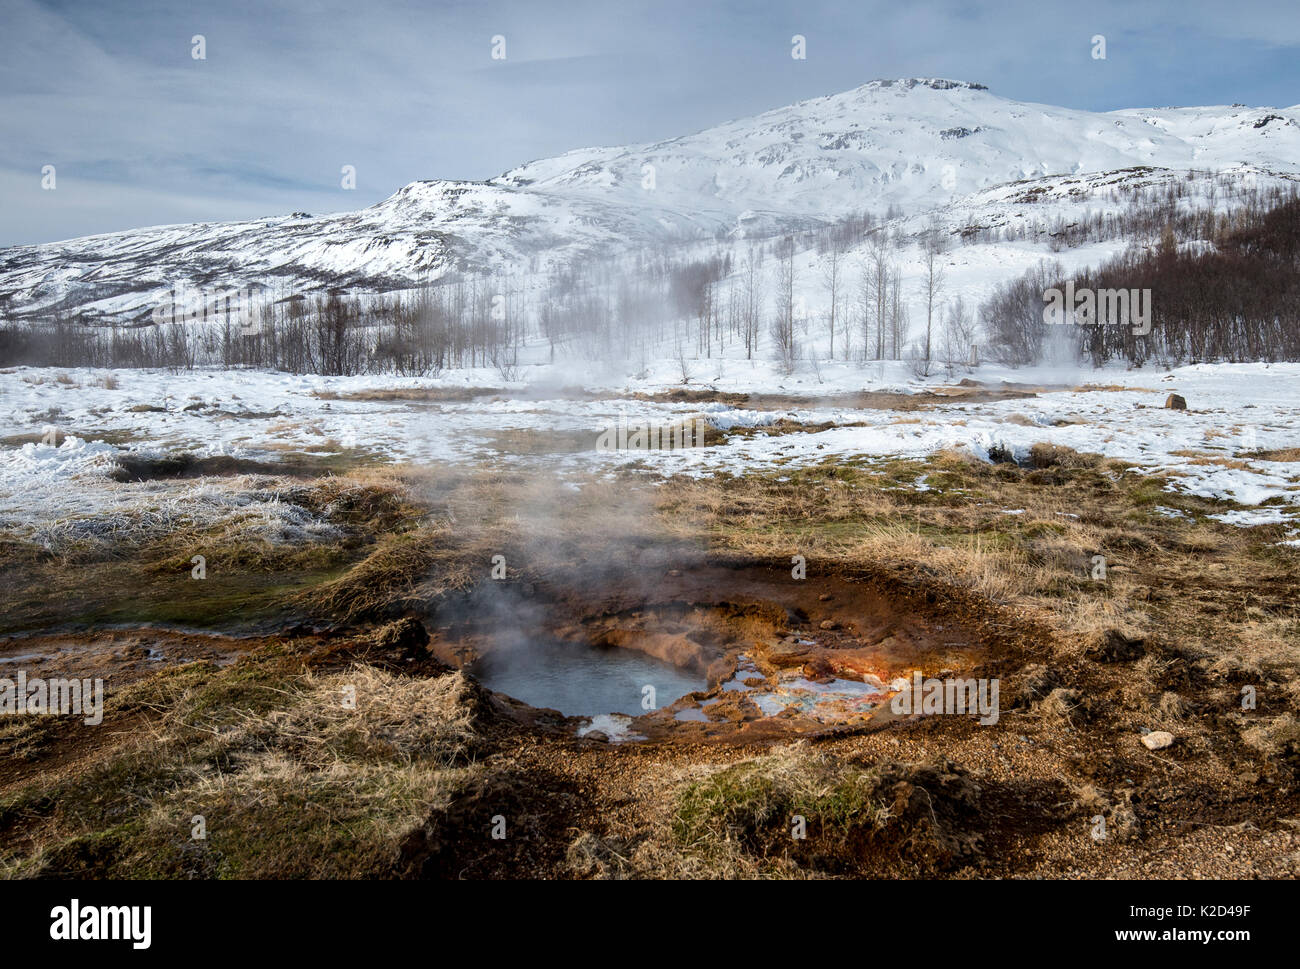 Small geothermal vent, Geysir Hot Spring Area, South West Iceland, March 2015. - Stock Image